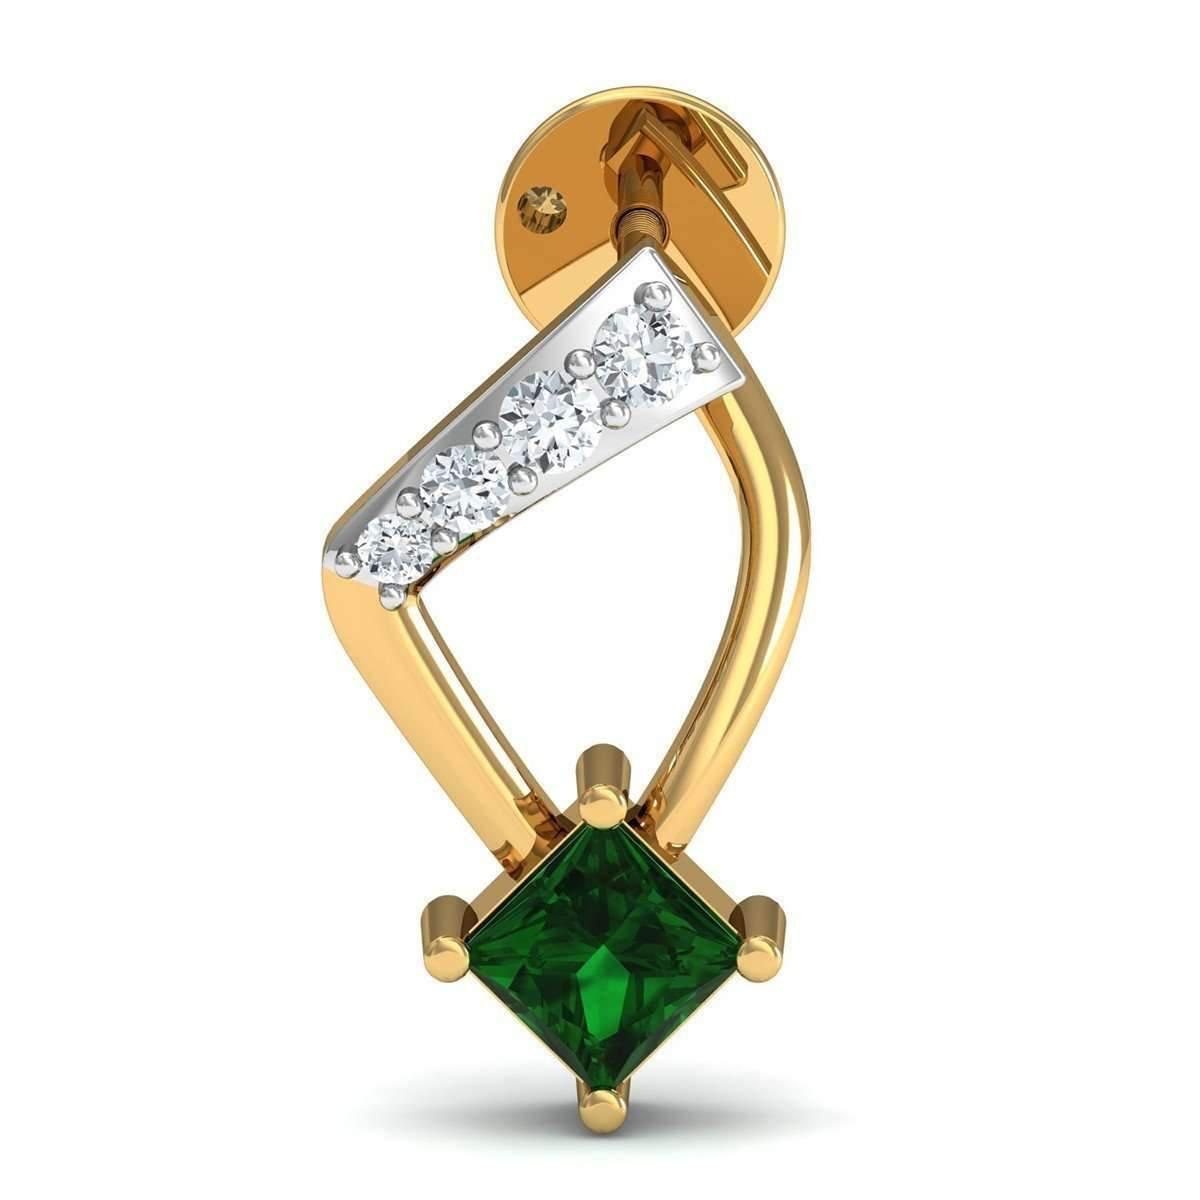 Diamoire Jewels Emerald Cut Emerald Pendant with Premium Diamonds in 18kt Yellow Gold eO1MFxEt0